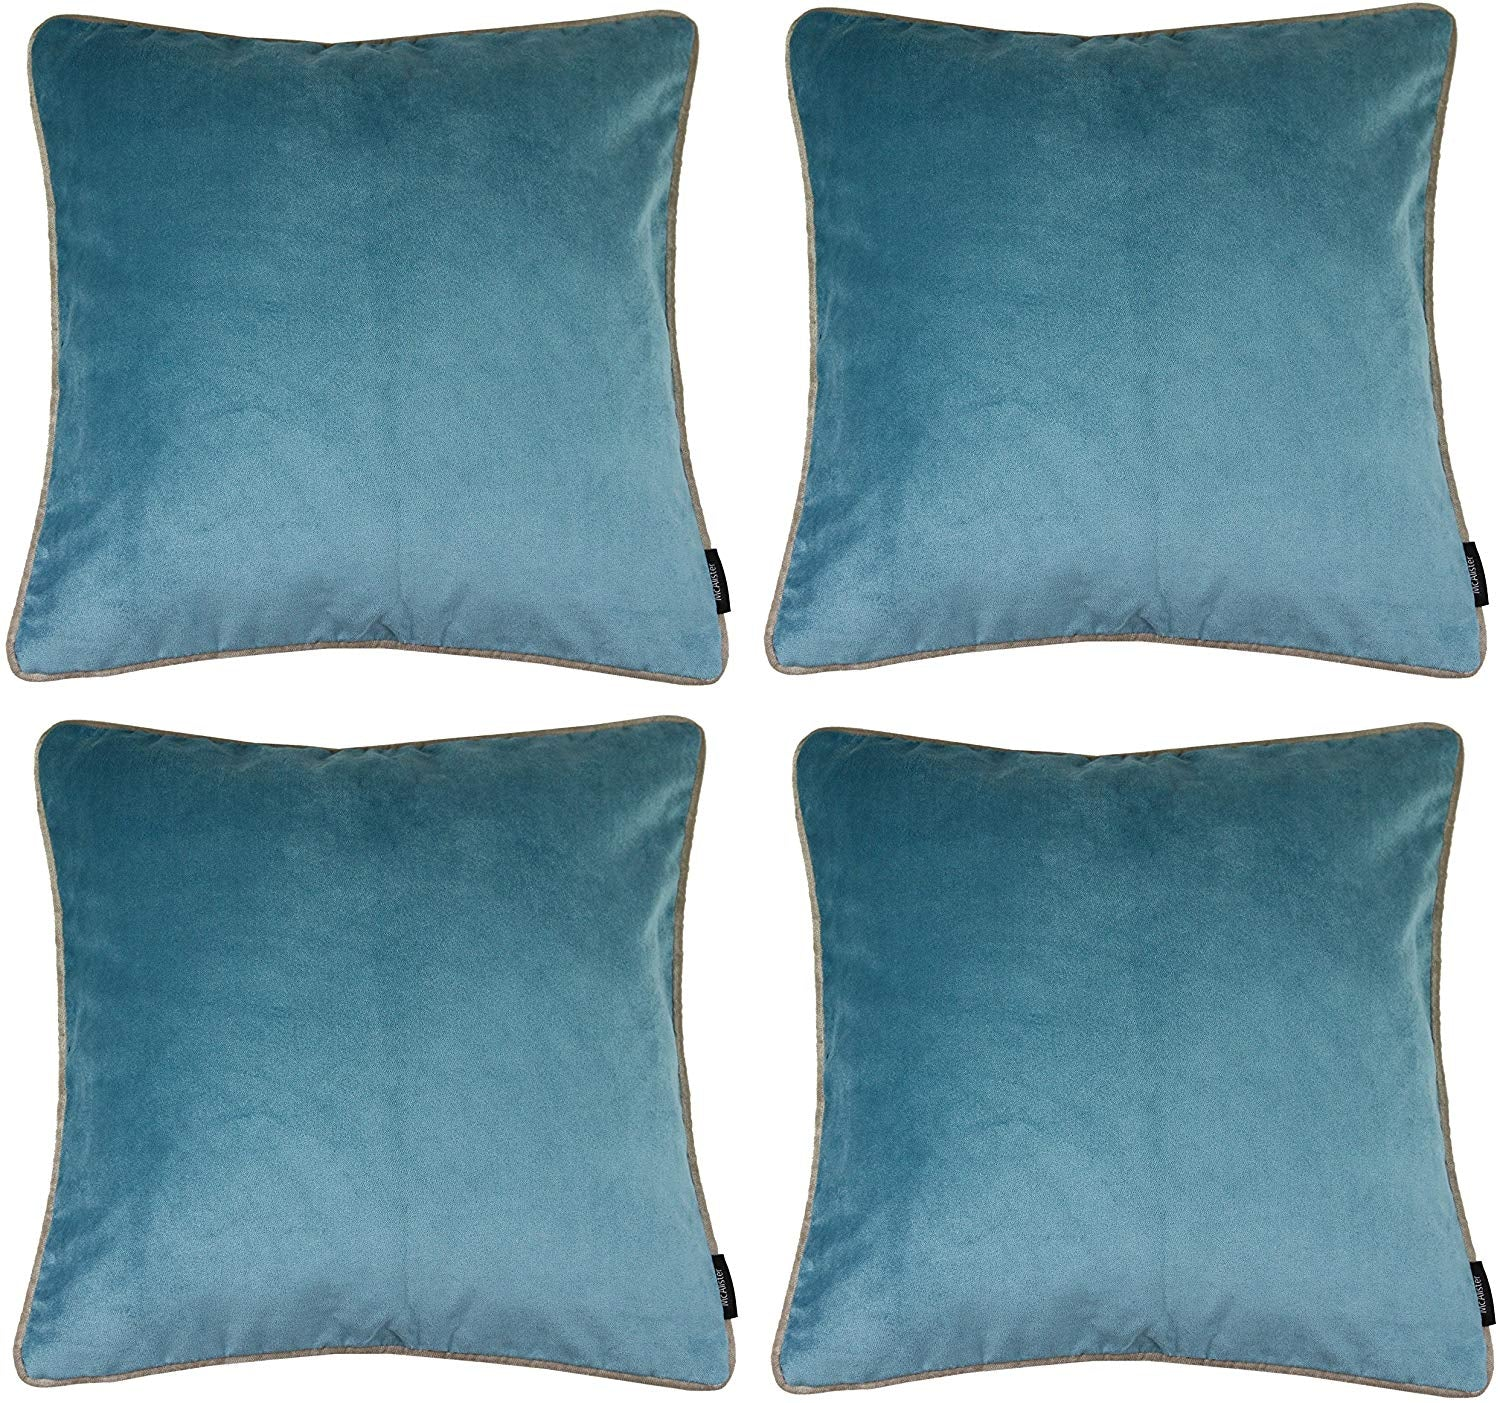 McAlister Textiles Matt Duck Egg Blue Velvet 43cm x 43cm Cushion Sets Cushions and Covers Cushion Covers Set of 4